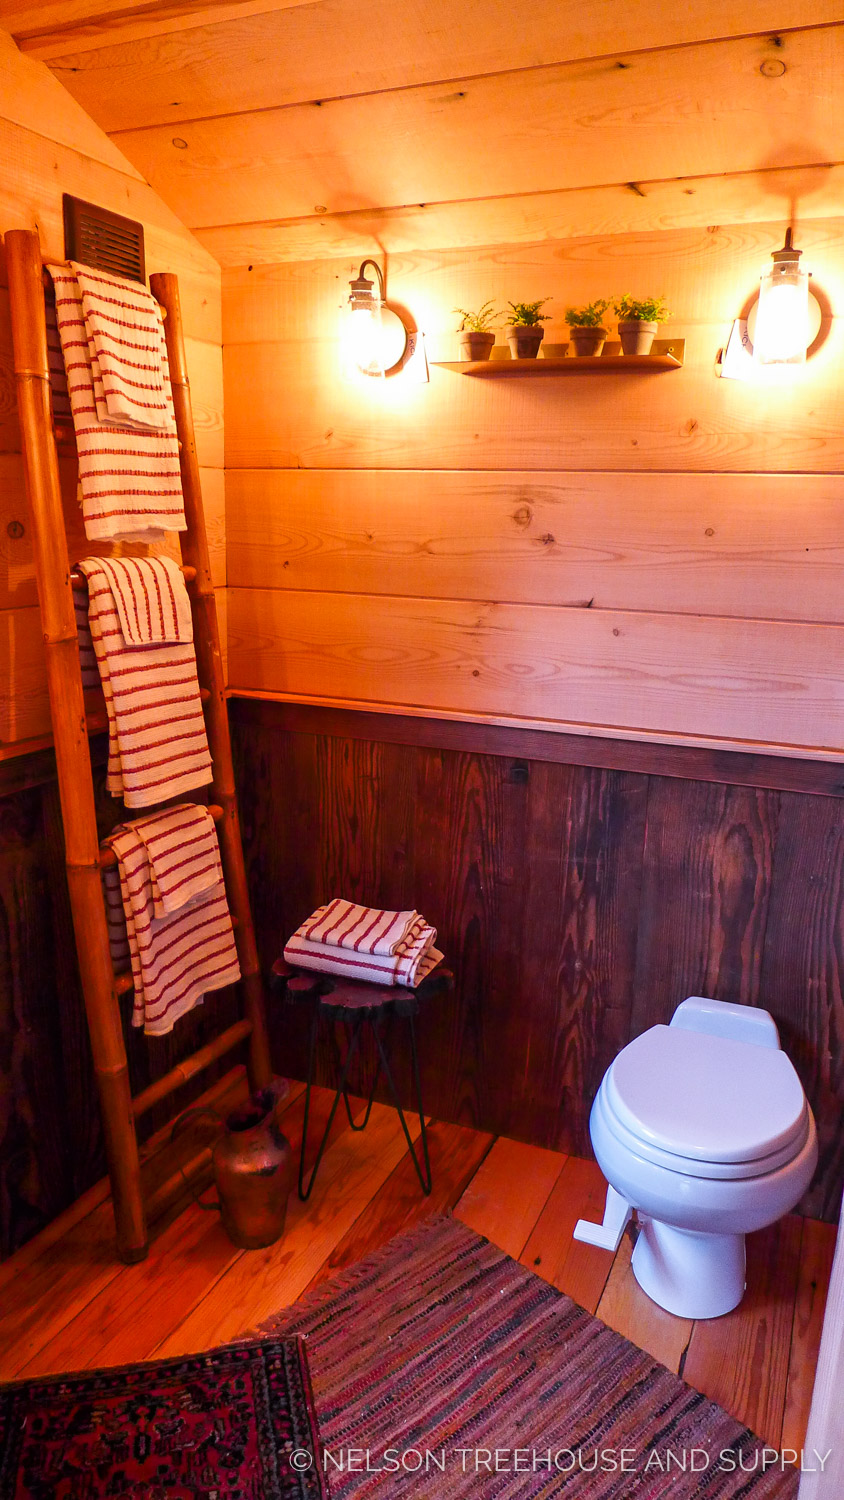 The Composting Toilet Inside The Bathroom On The Main Floor Neatly Stores  Its Composting Section In A Separate Unit Outside The Treehouse.